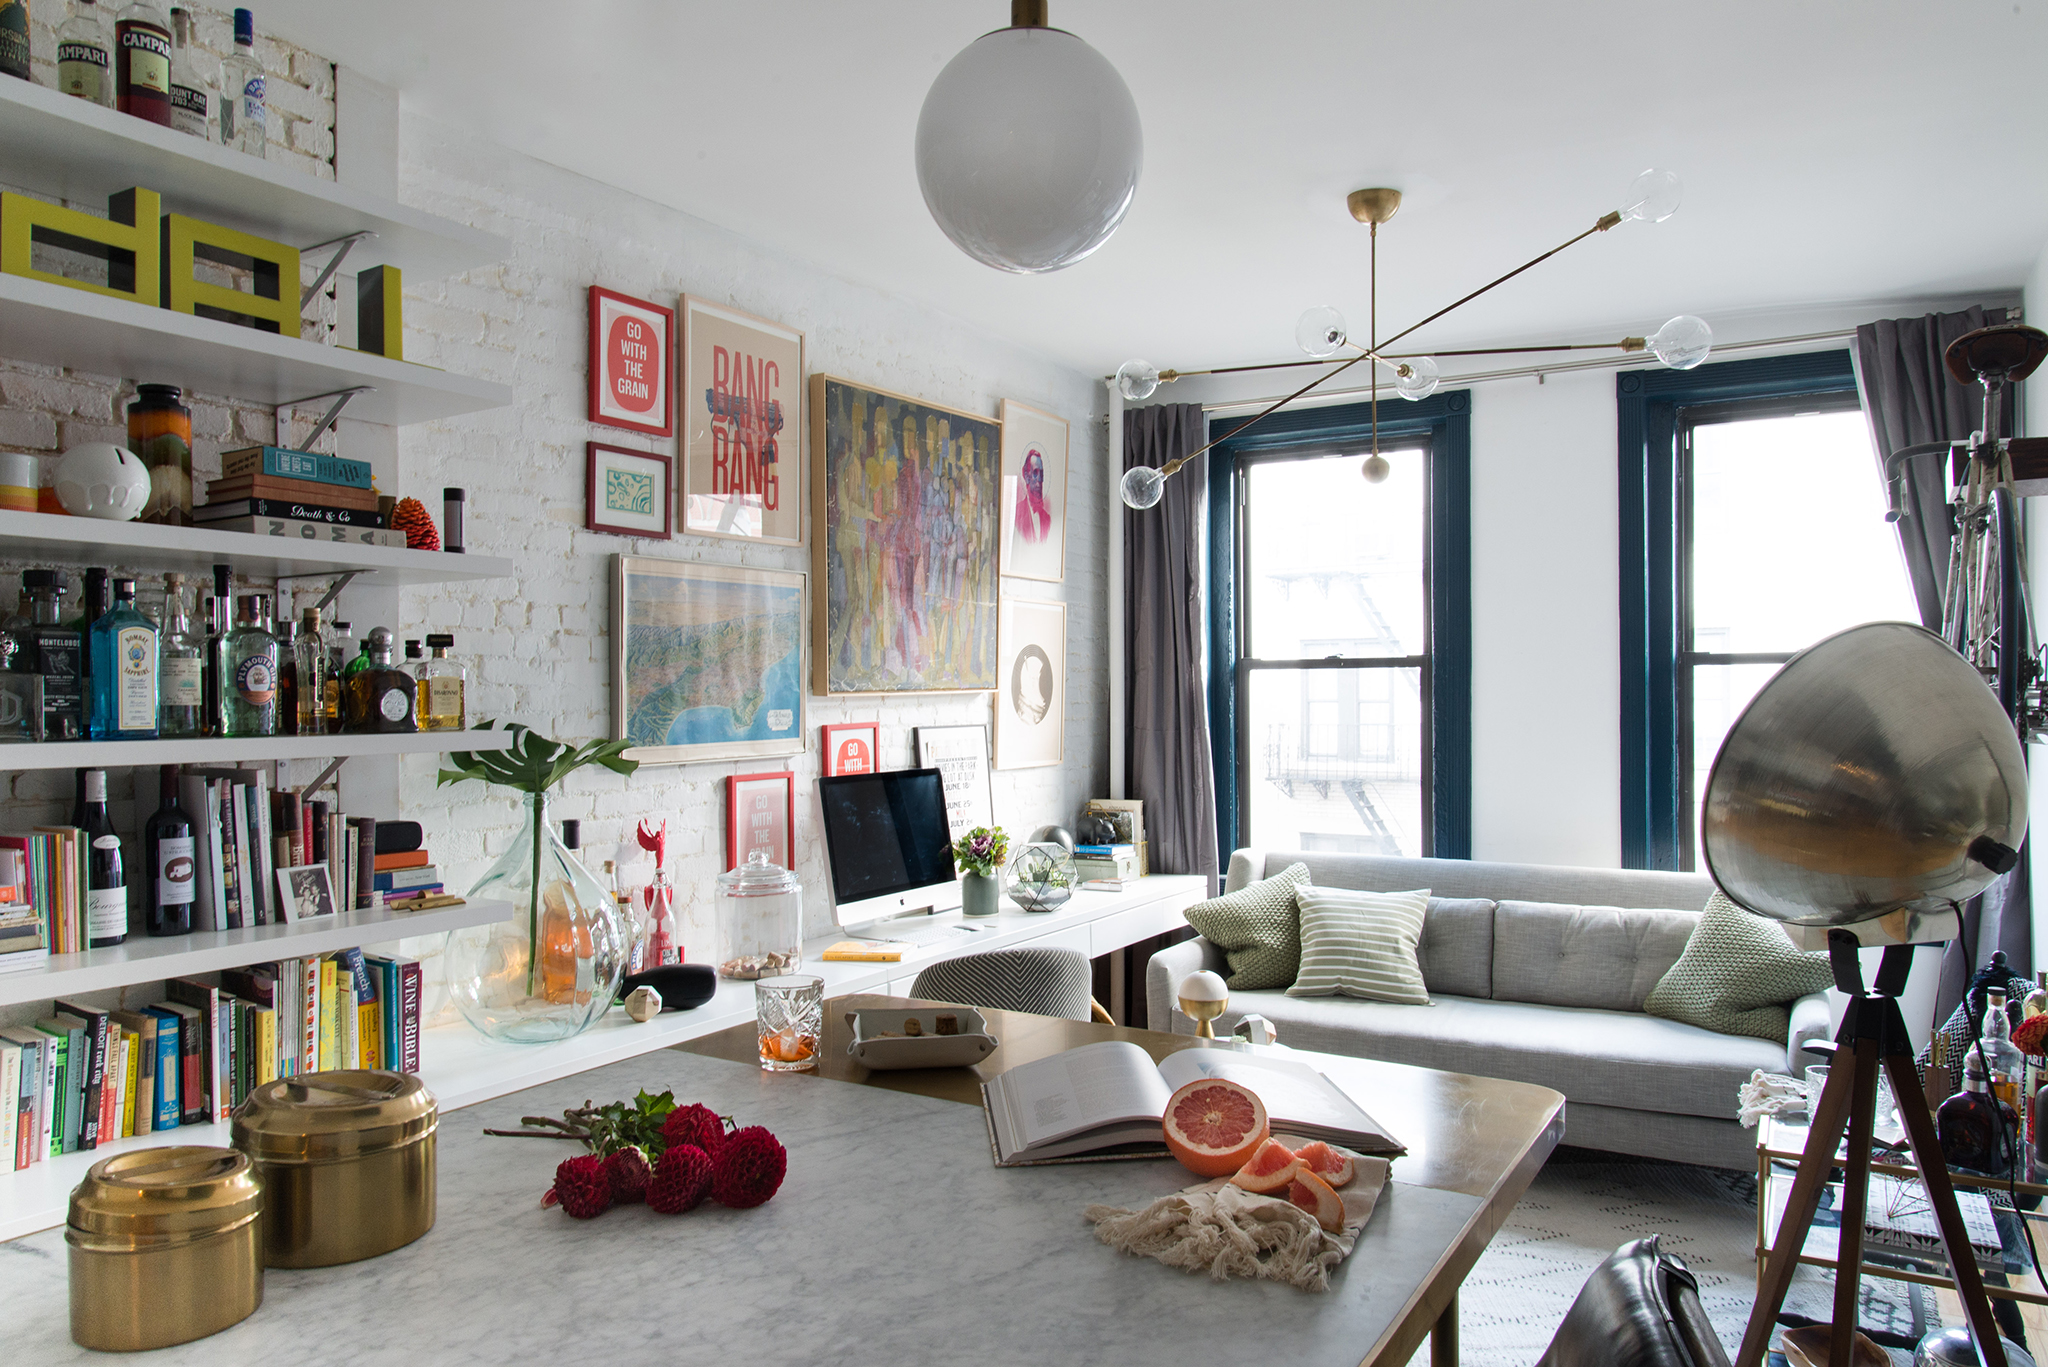 The Best Digital Interior Design Sites To Help You Create